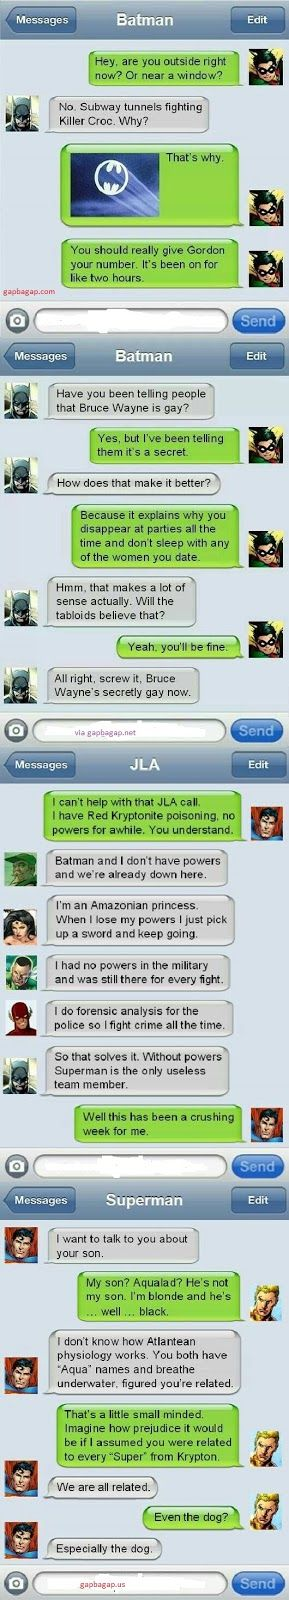 Top 4 Hilarious Text Messages About Batmam vs. Sup...